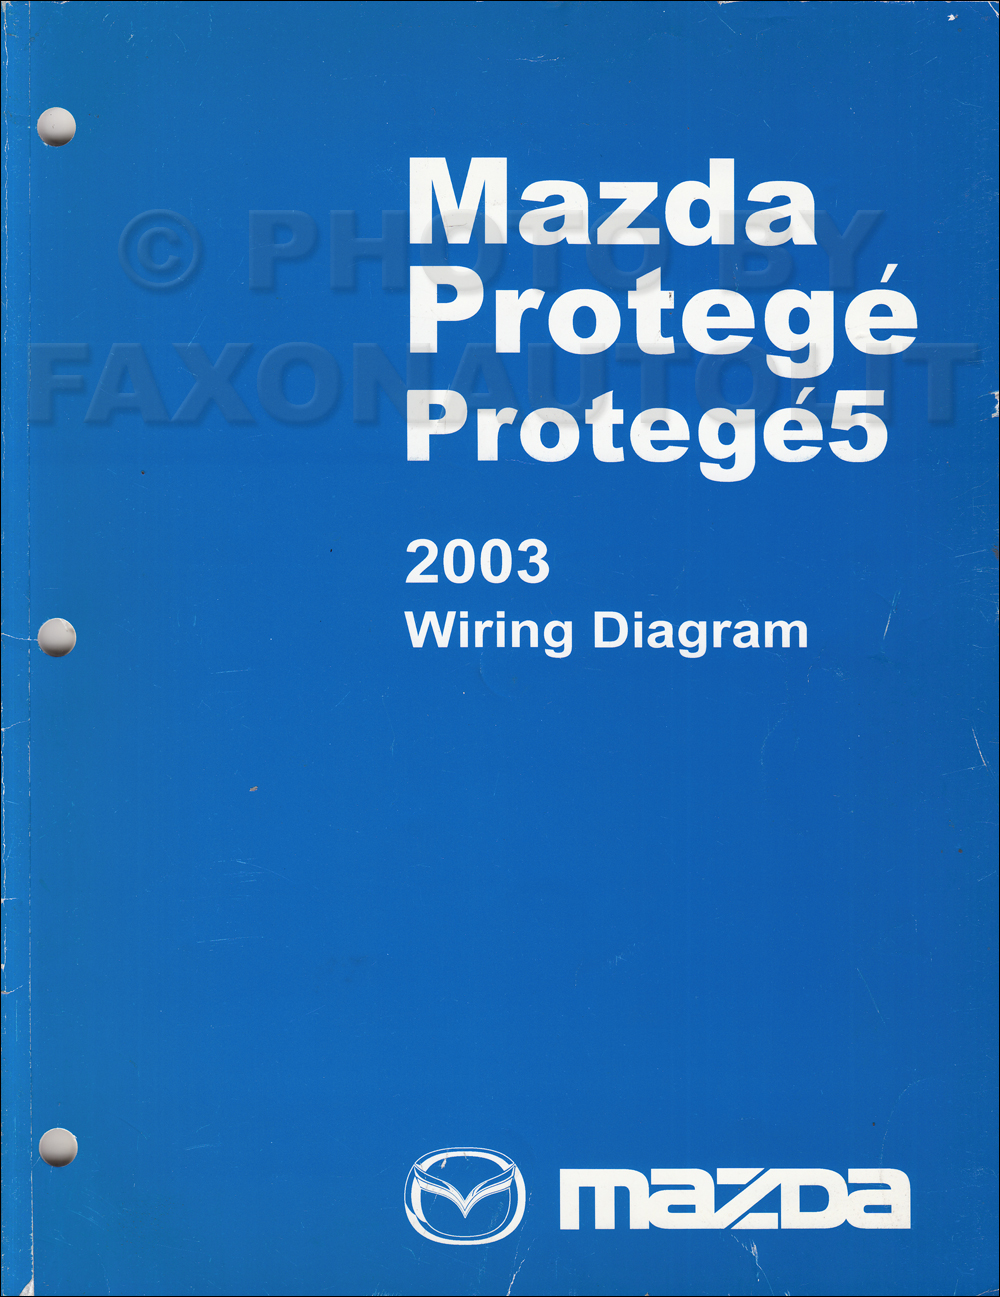 2003 mazda protege and protege5 wiring diagram manual original rh faxonautoliterature com 2003 mazda protege wiring diagram mazda protege5 wiring diagram